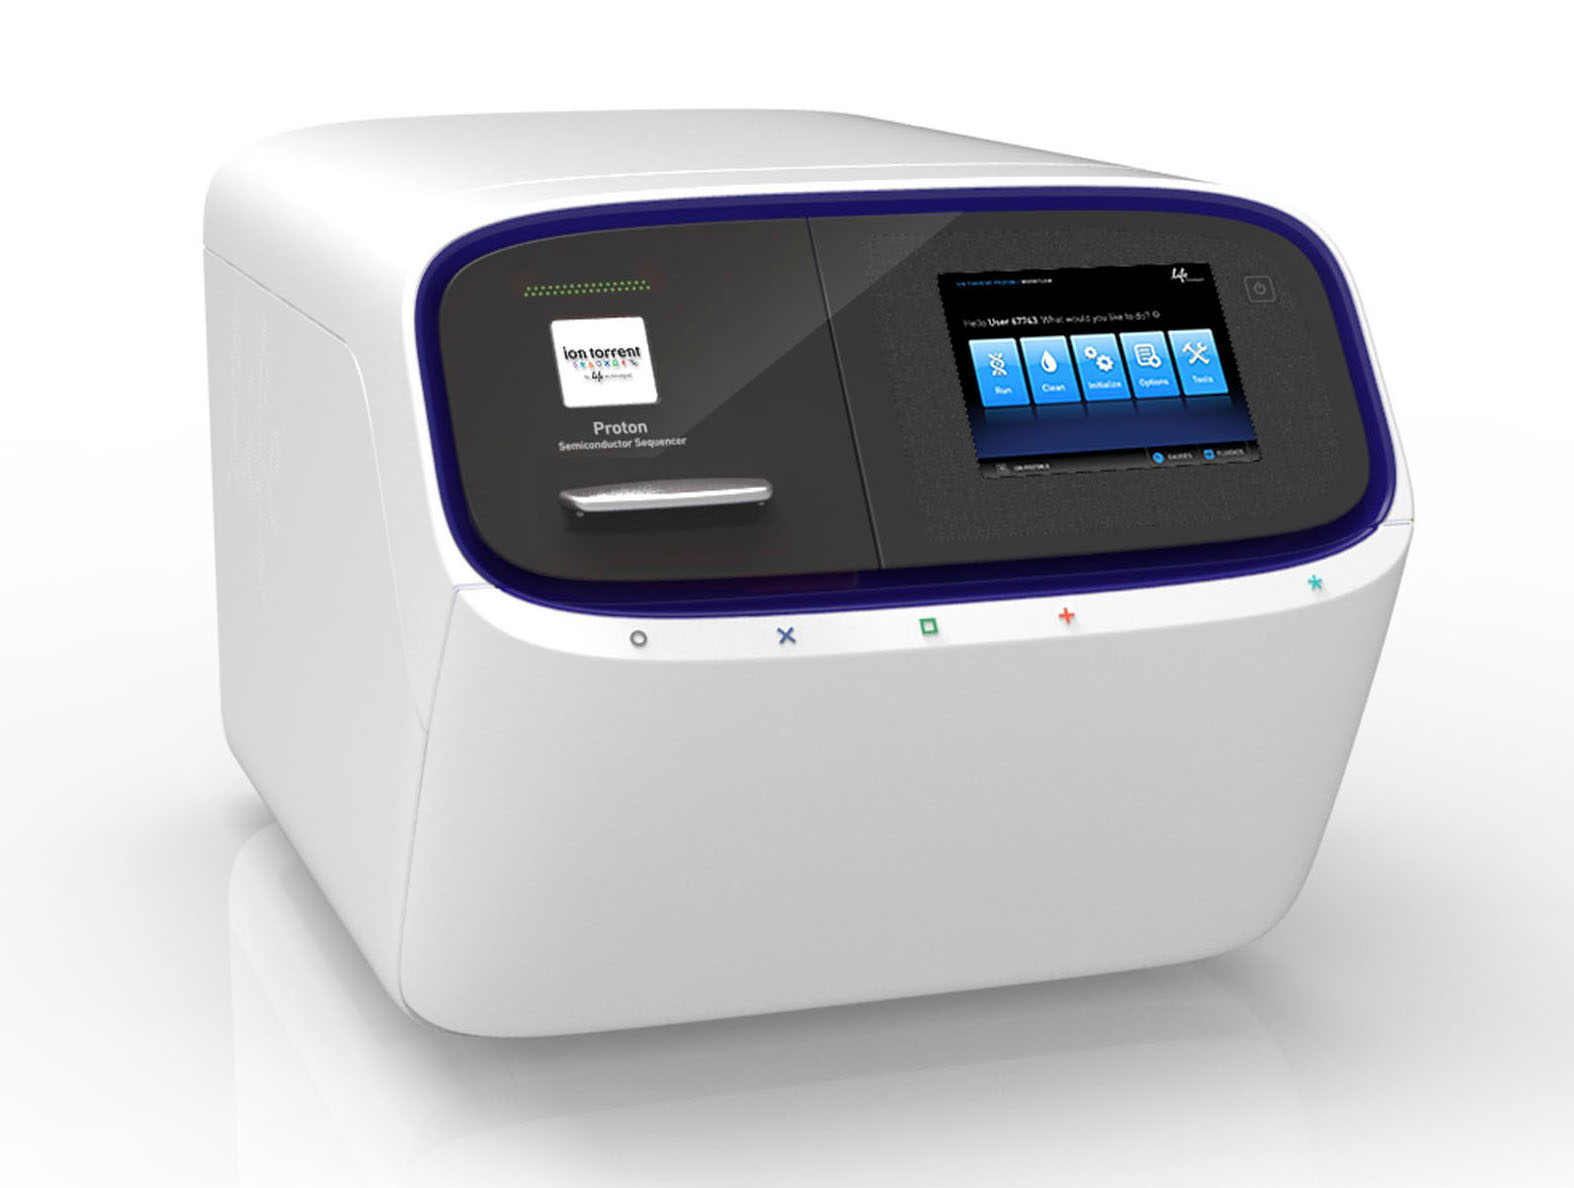 Ion Torrent PROTON (Thermofisher)